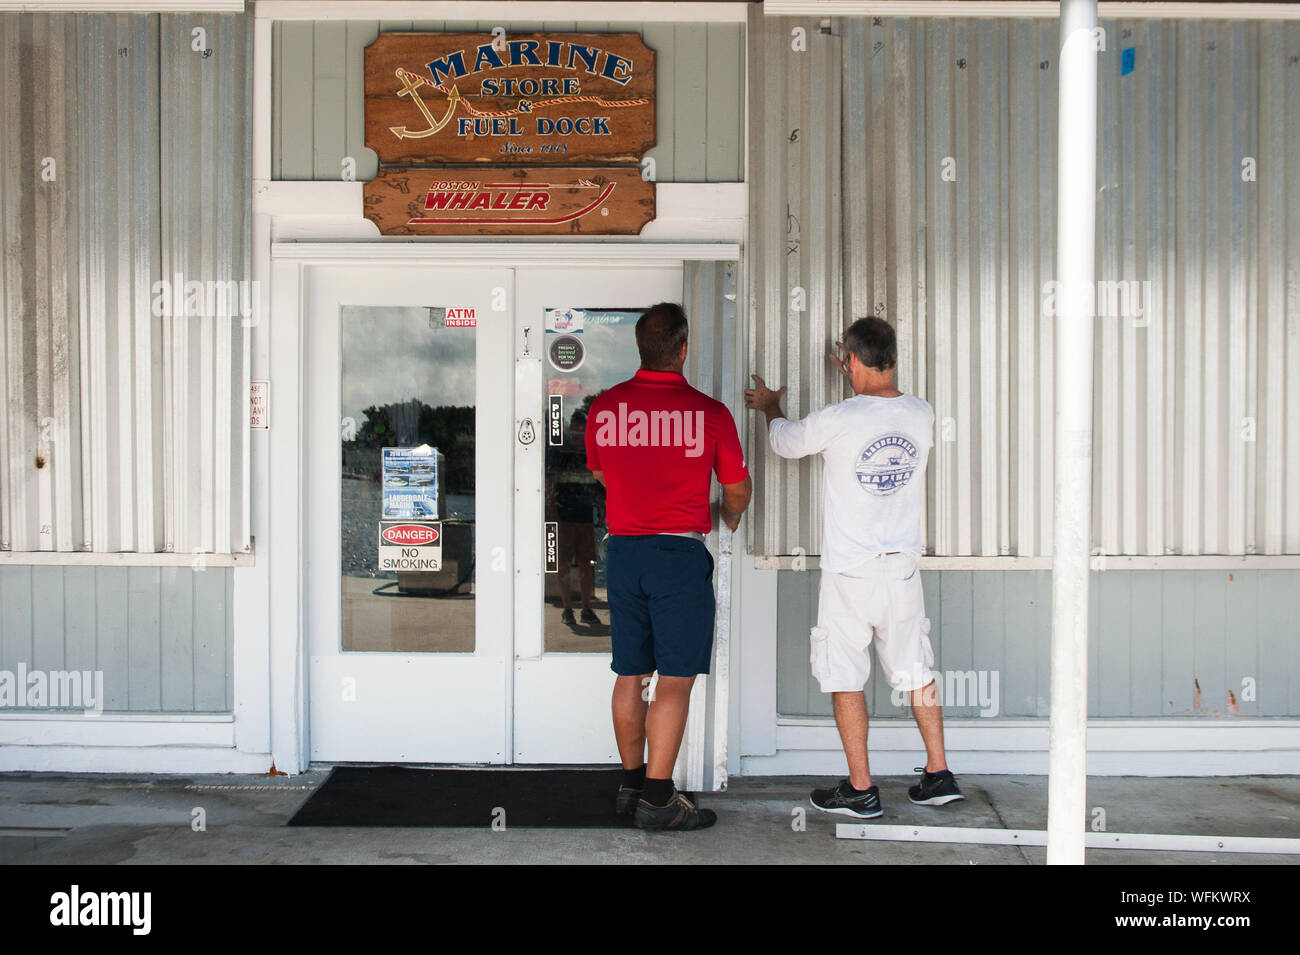 Fort Lauderdale, Florida, USA. 31st Aug, 2019. Marina workers install hurricane shutters at Fort Lauderdale Marina in enticipation of Hurricane Dorian. Credit: Orit Ben-Ezzer/ZUMA Wire/Alamy Live News Stock Photo